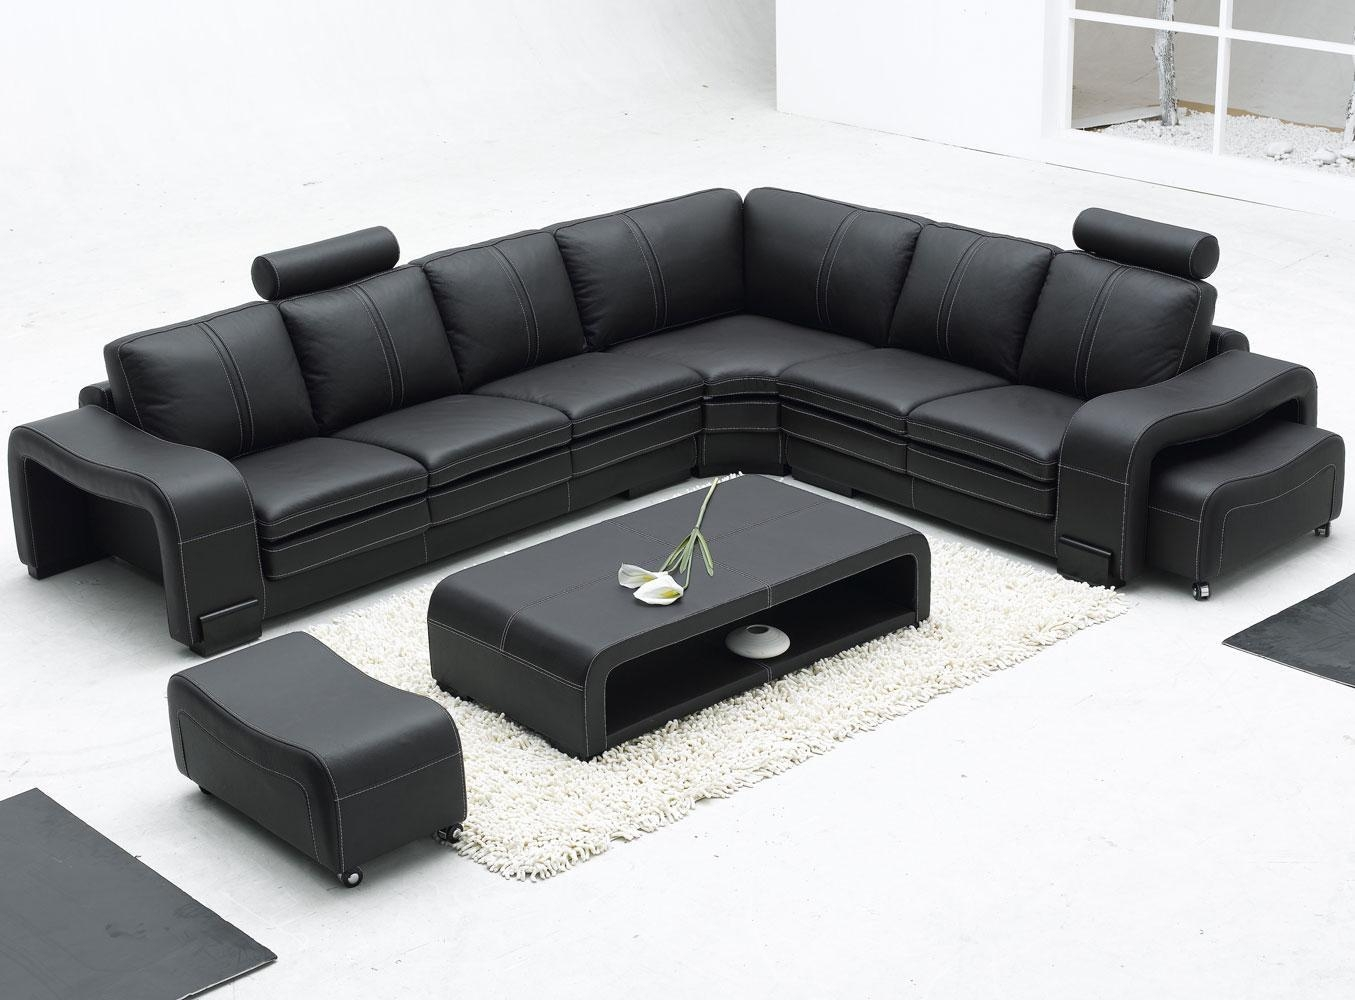 Modern Style Contemporary Black Leather Sofa With Modern Black Regarding Contemporary Black Leather Sofas (Image 14 of 20)